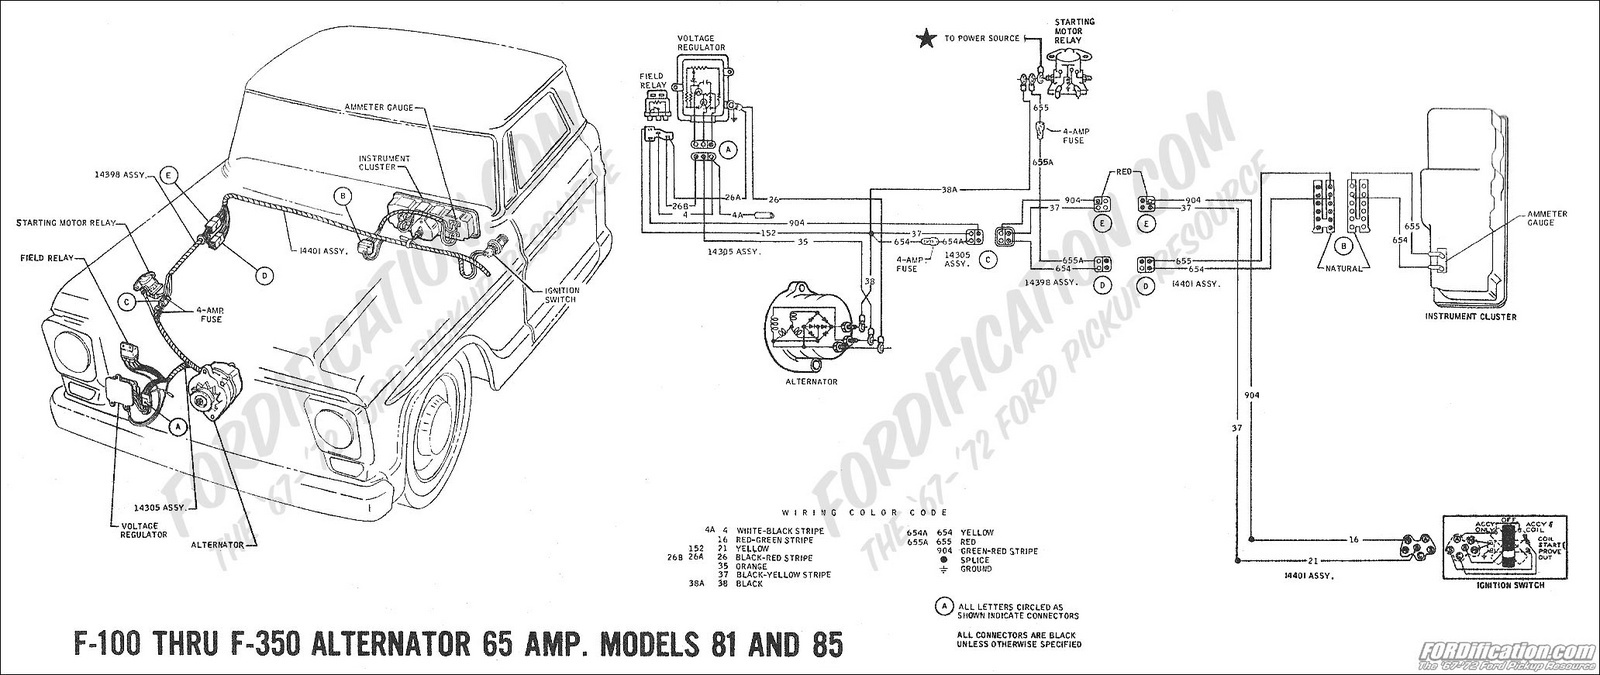 1971 Ford F 250 Alternator Wiring Diagram Reinvent Your 460 Ignition Camper 100 Questions I Have A 73 No Power To The S Rh Cargurus Com 1960 Special